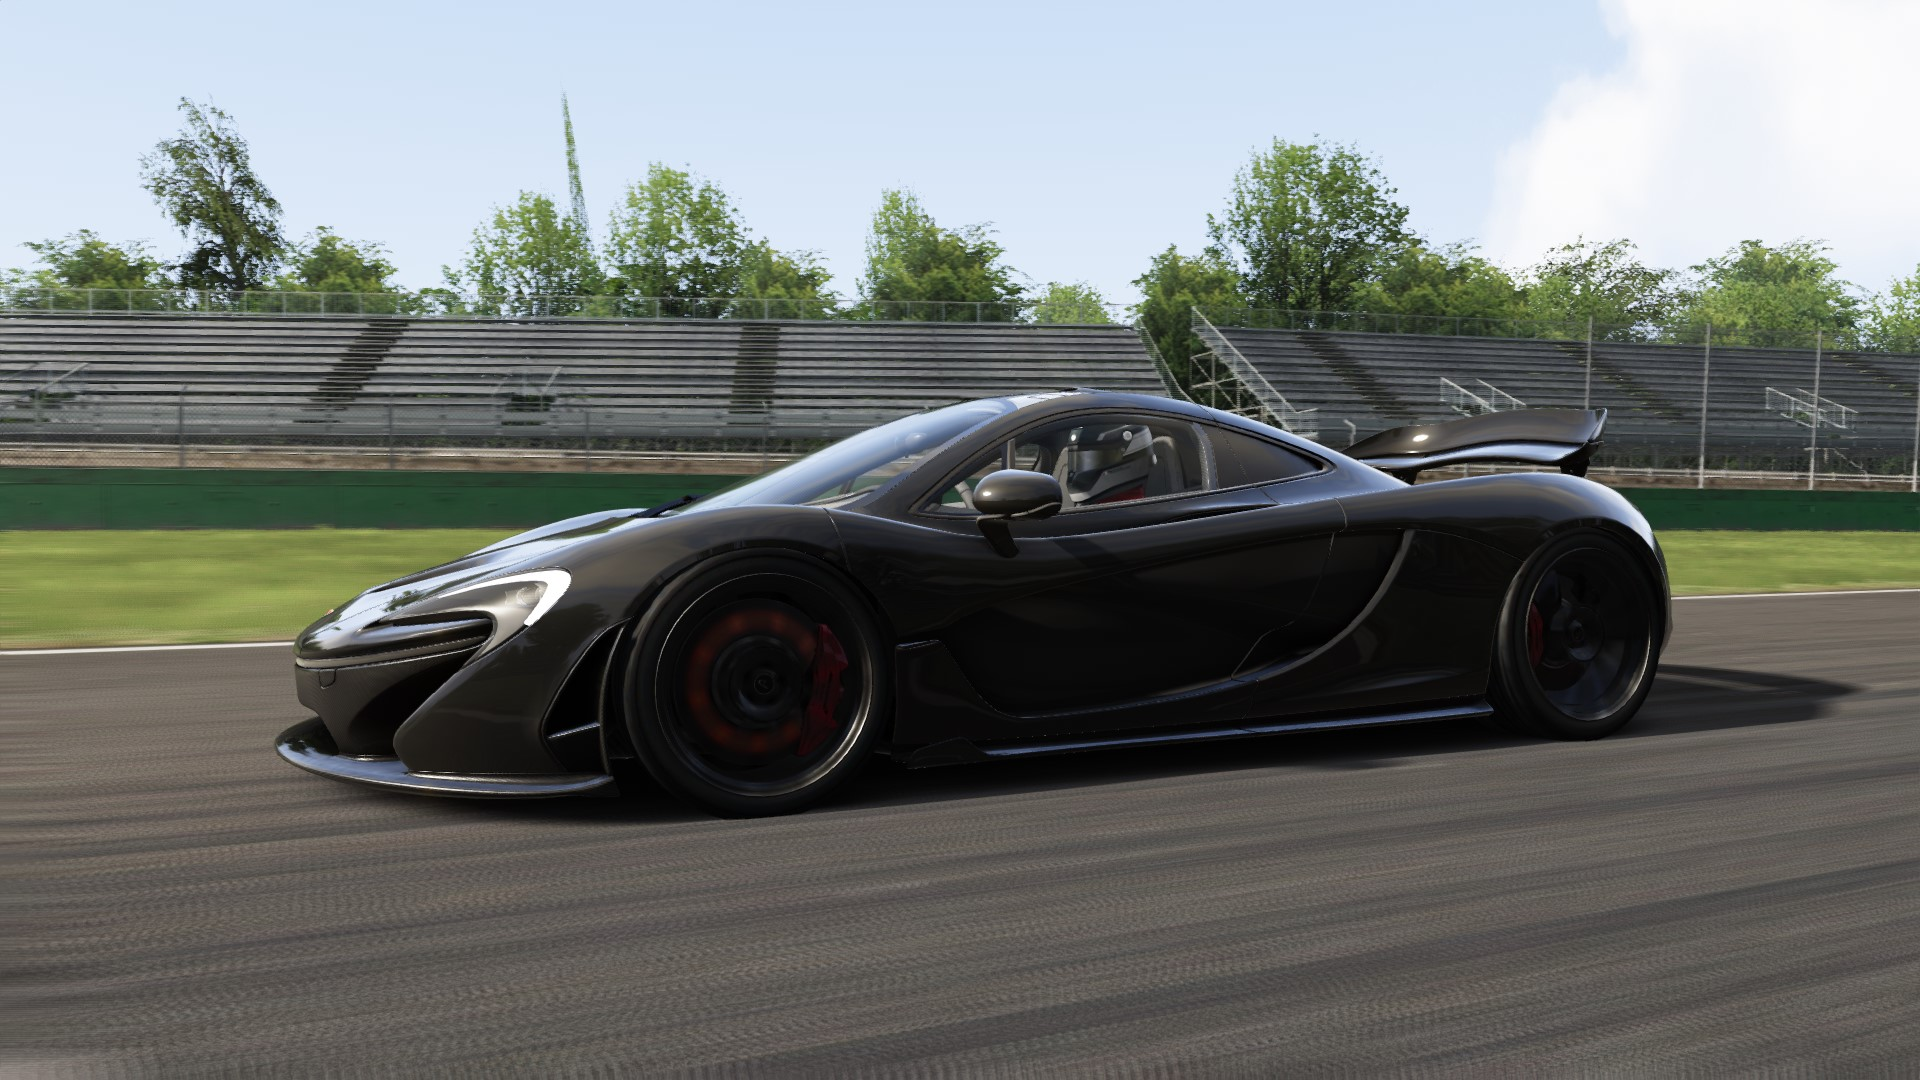 Screenshot_ks_mclaren_p1_monza_30-9-117-17-19-26.jpg